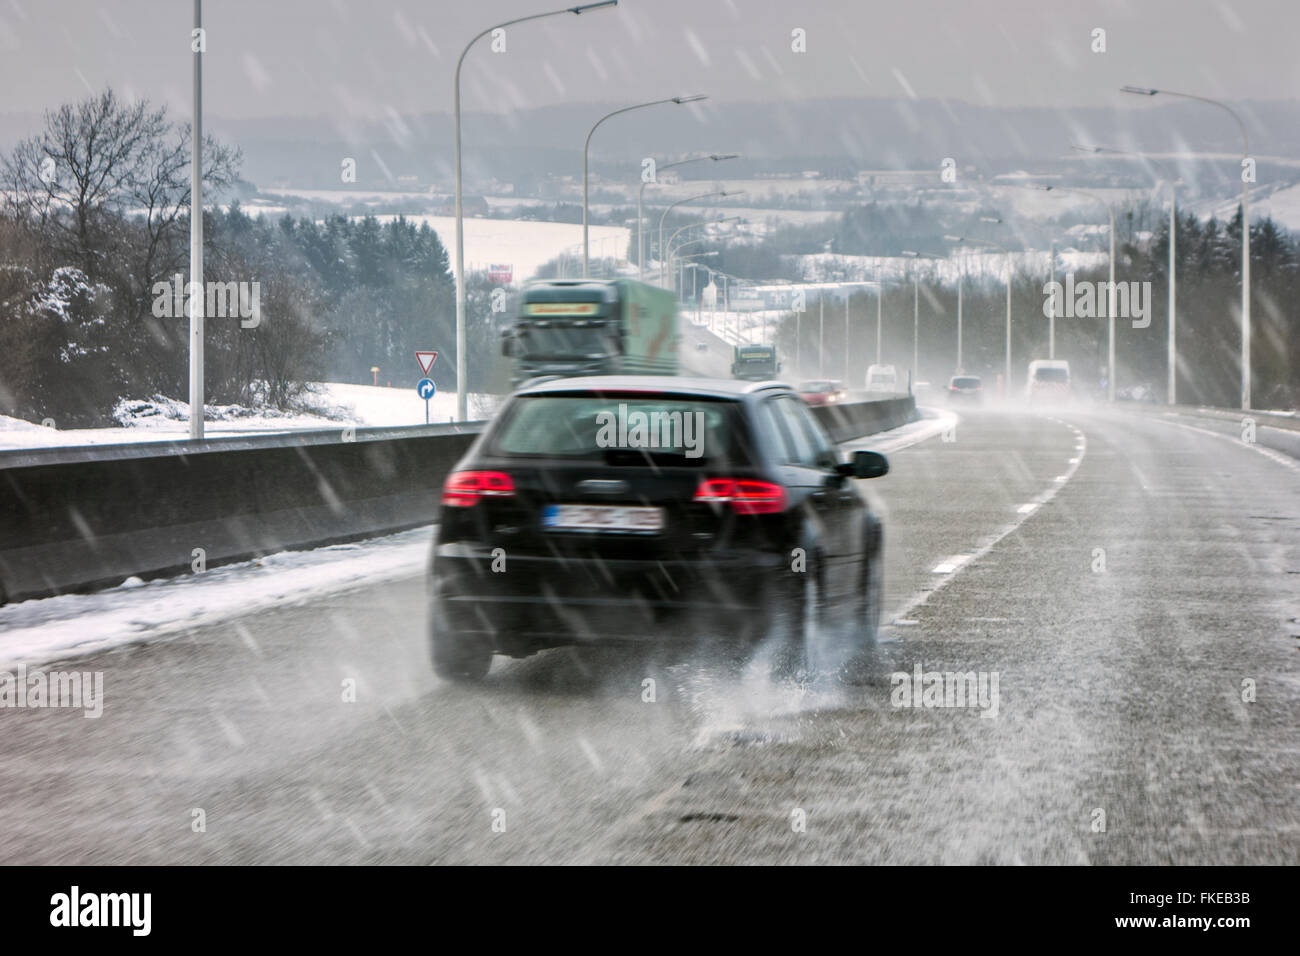 Cars driving on slippery highway during sleet causing dangerous wintry wet road conditions in winter / spring - Stock Image